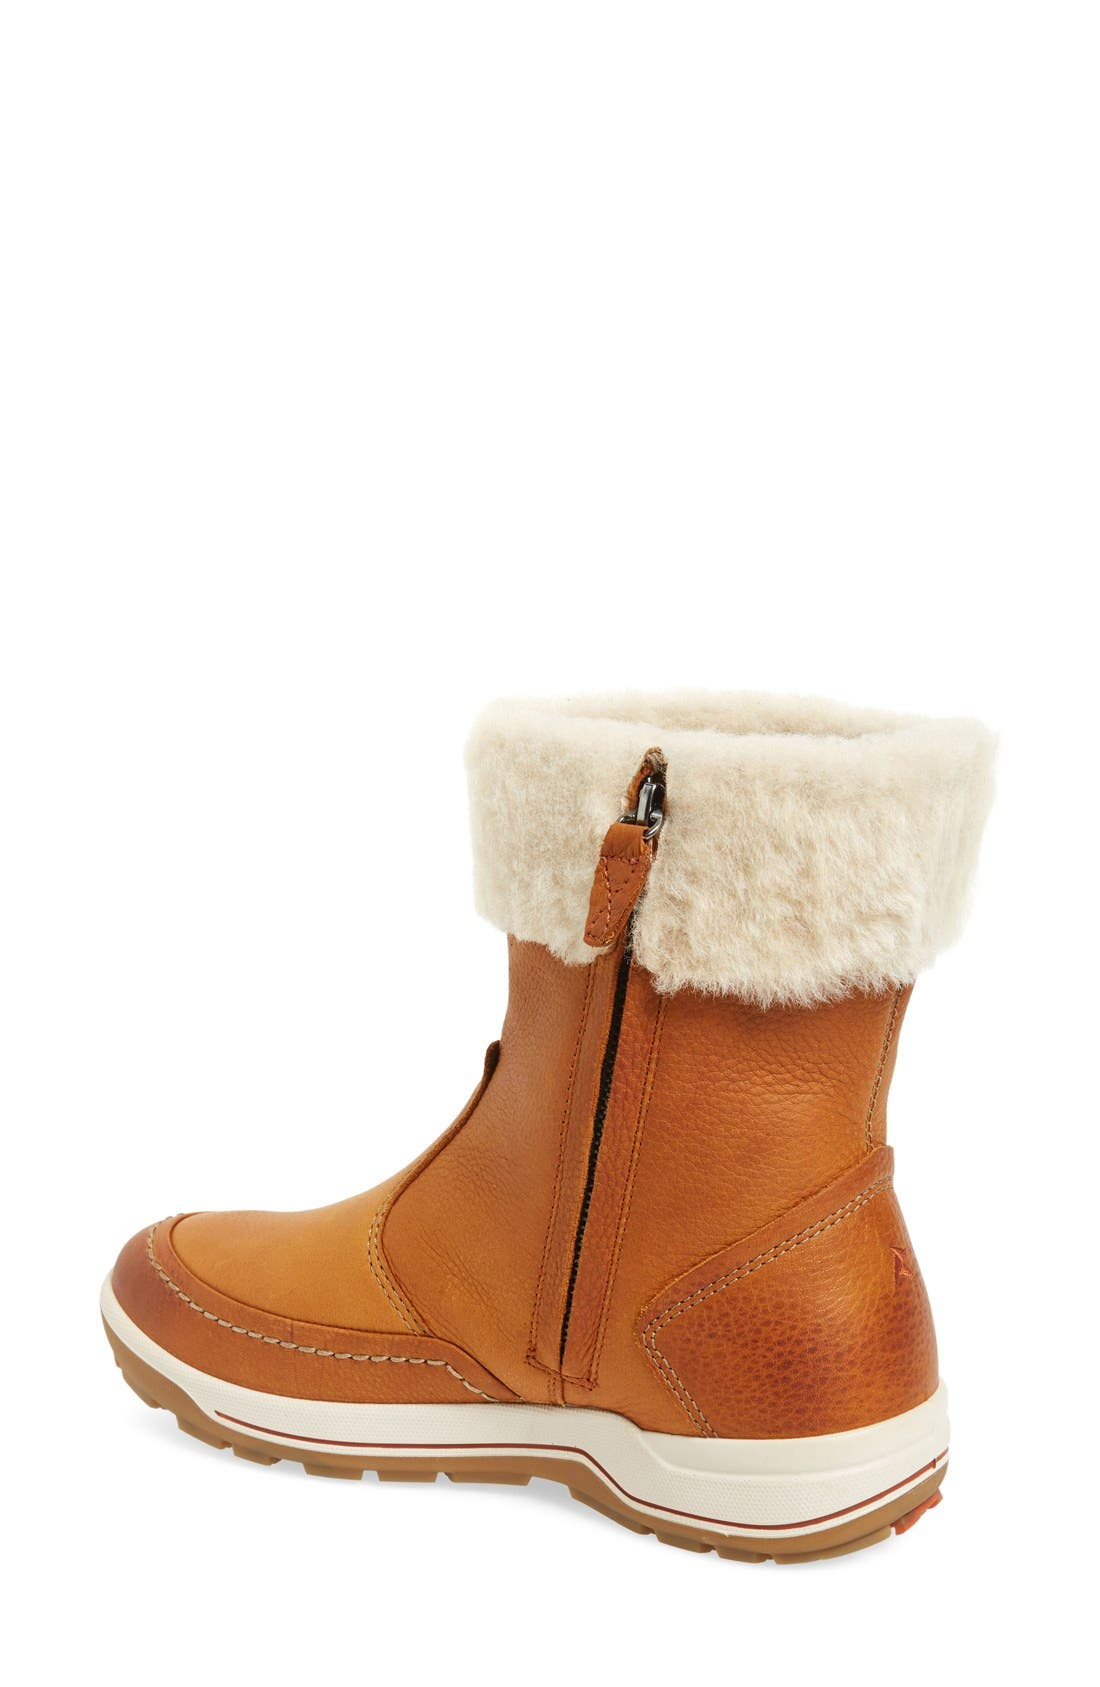 Trace Water Resistant Bootie,                             Alternate thumbnail 2, color,                             Amber Oiled Nubuck Leather